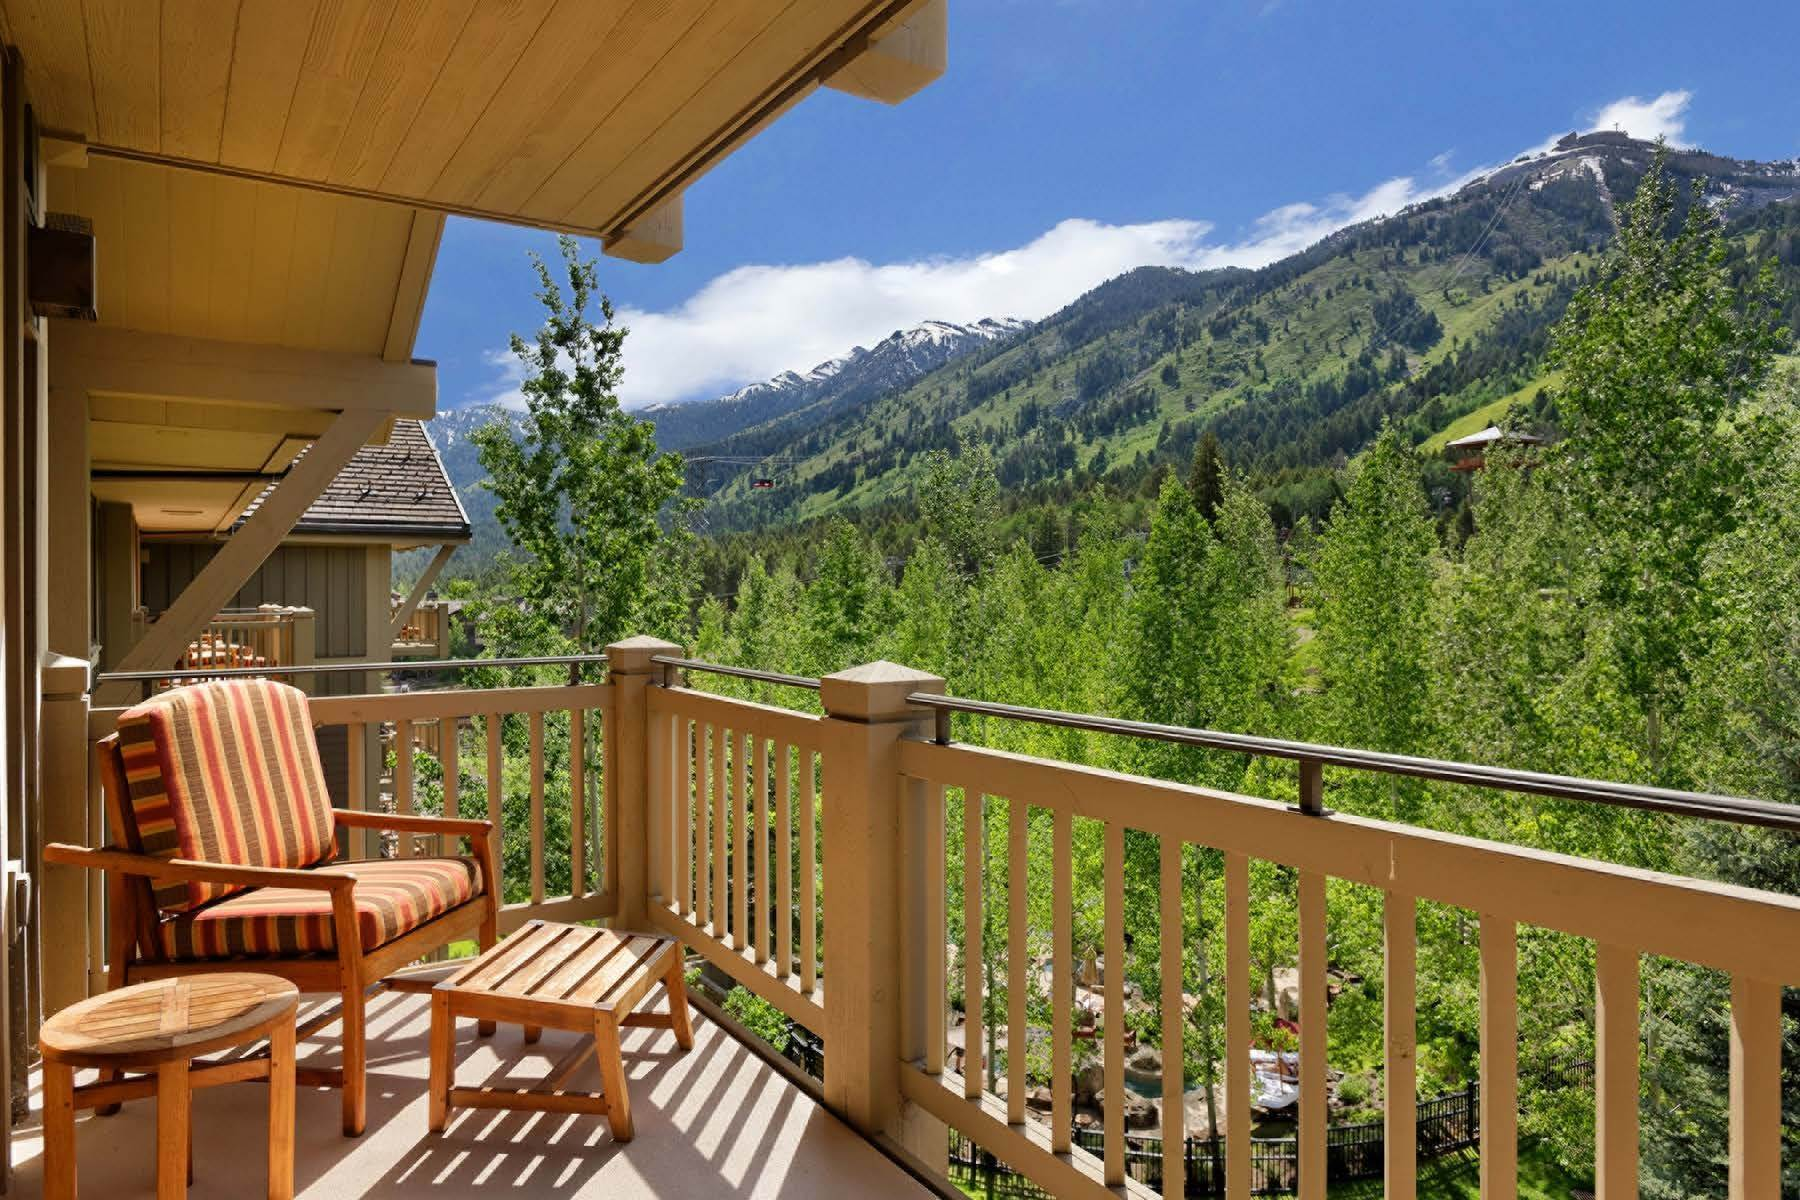 4. Condominiums for Sale at Refreshed Four Seasons Private Residence 7680 N Granite Loop Road, Unit 850 Teton Village, Wyoming 83025 United States